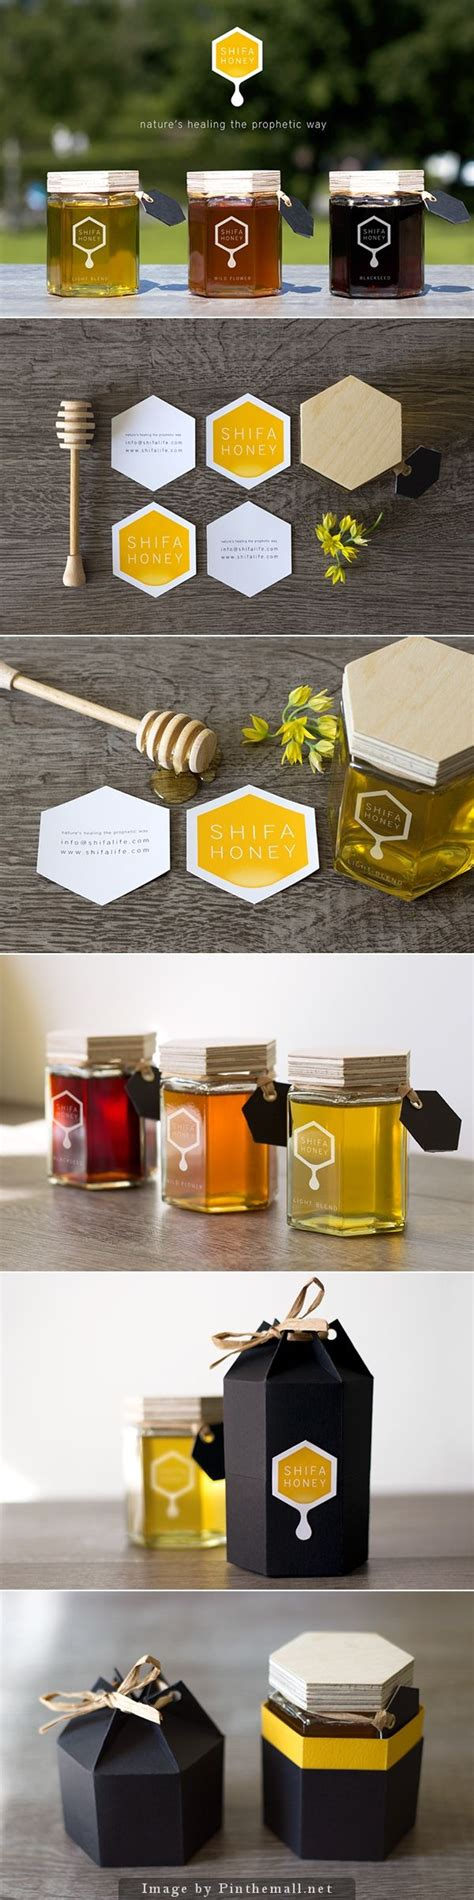 Shifa Set 25 best ideas about honey label on honey jars